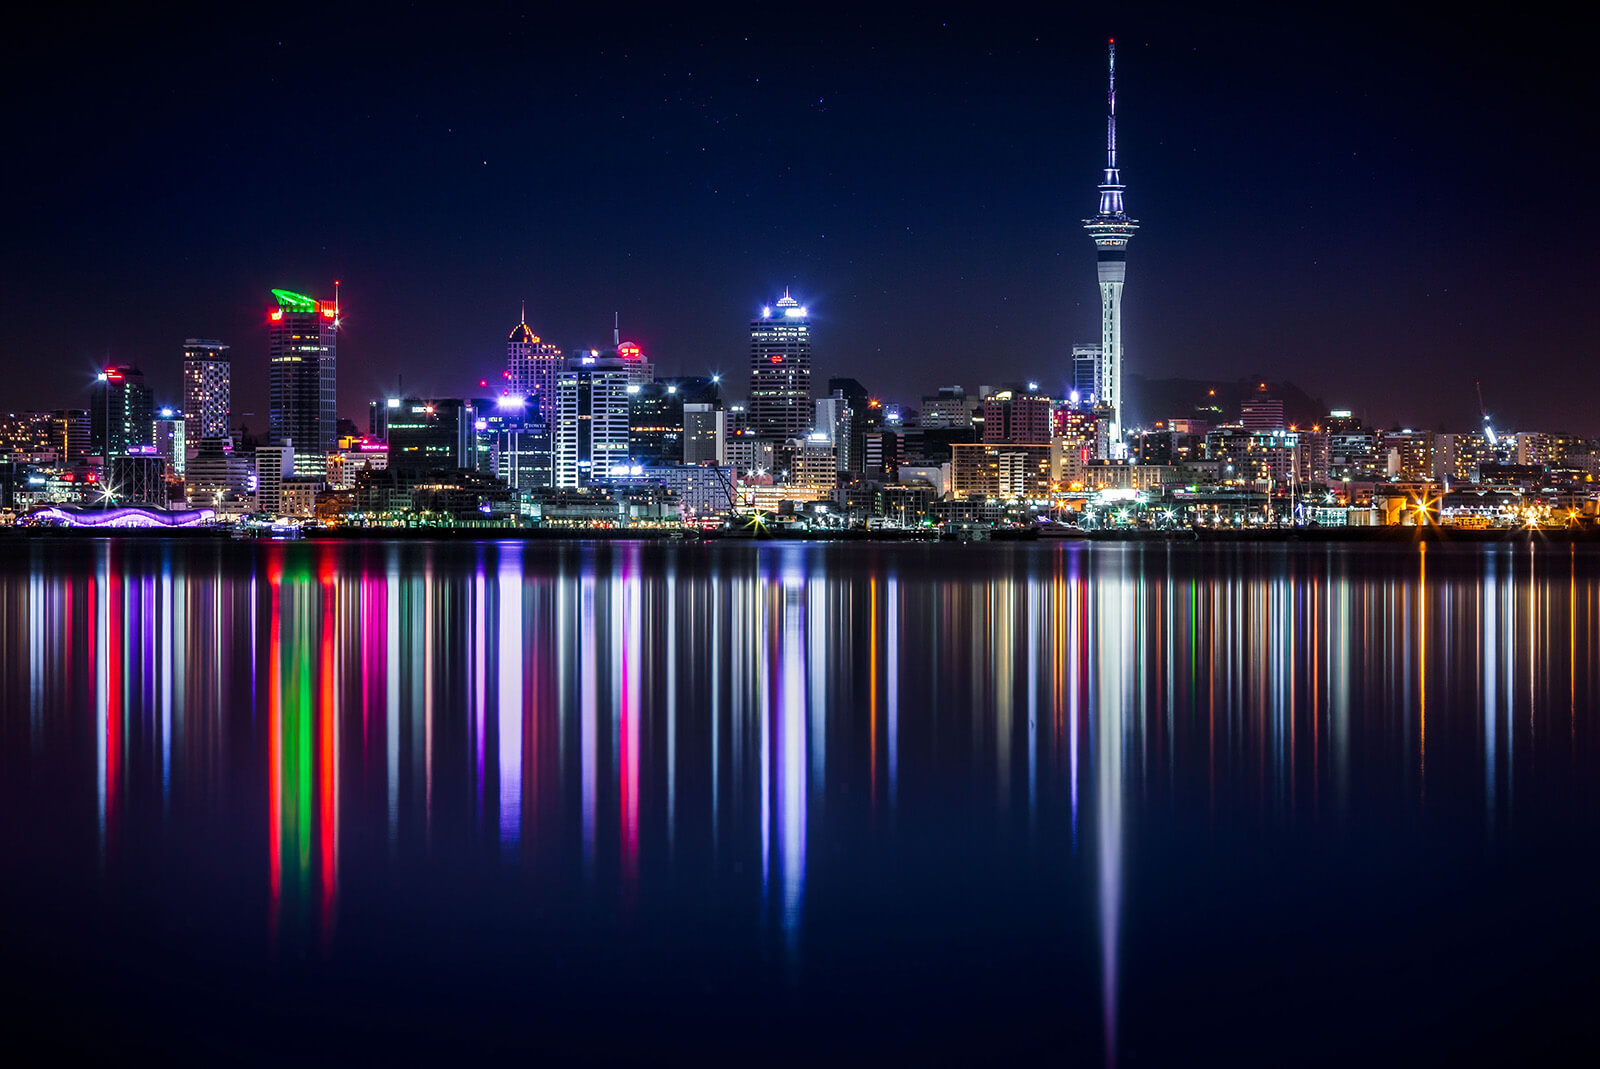 Auckland travel guide rule #3 -- be sure to experience the nightlife!